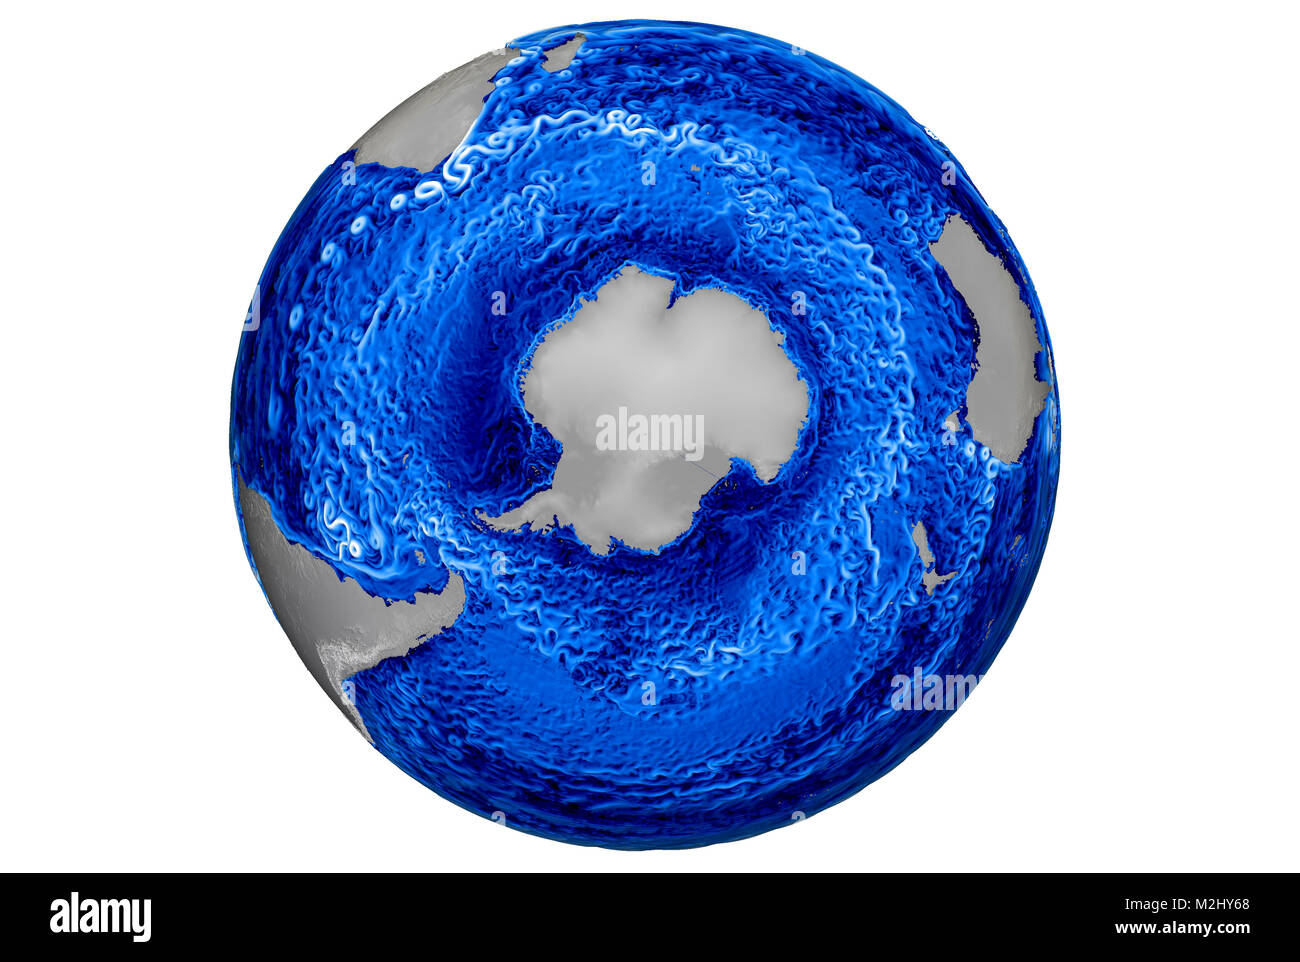 Global Ocean Simulation, Currents and Eddies, 2015 - Stock Image